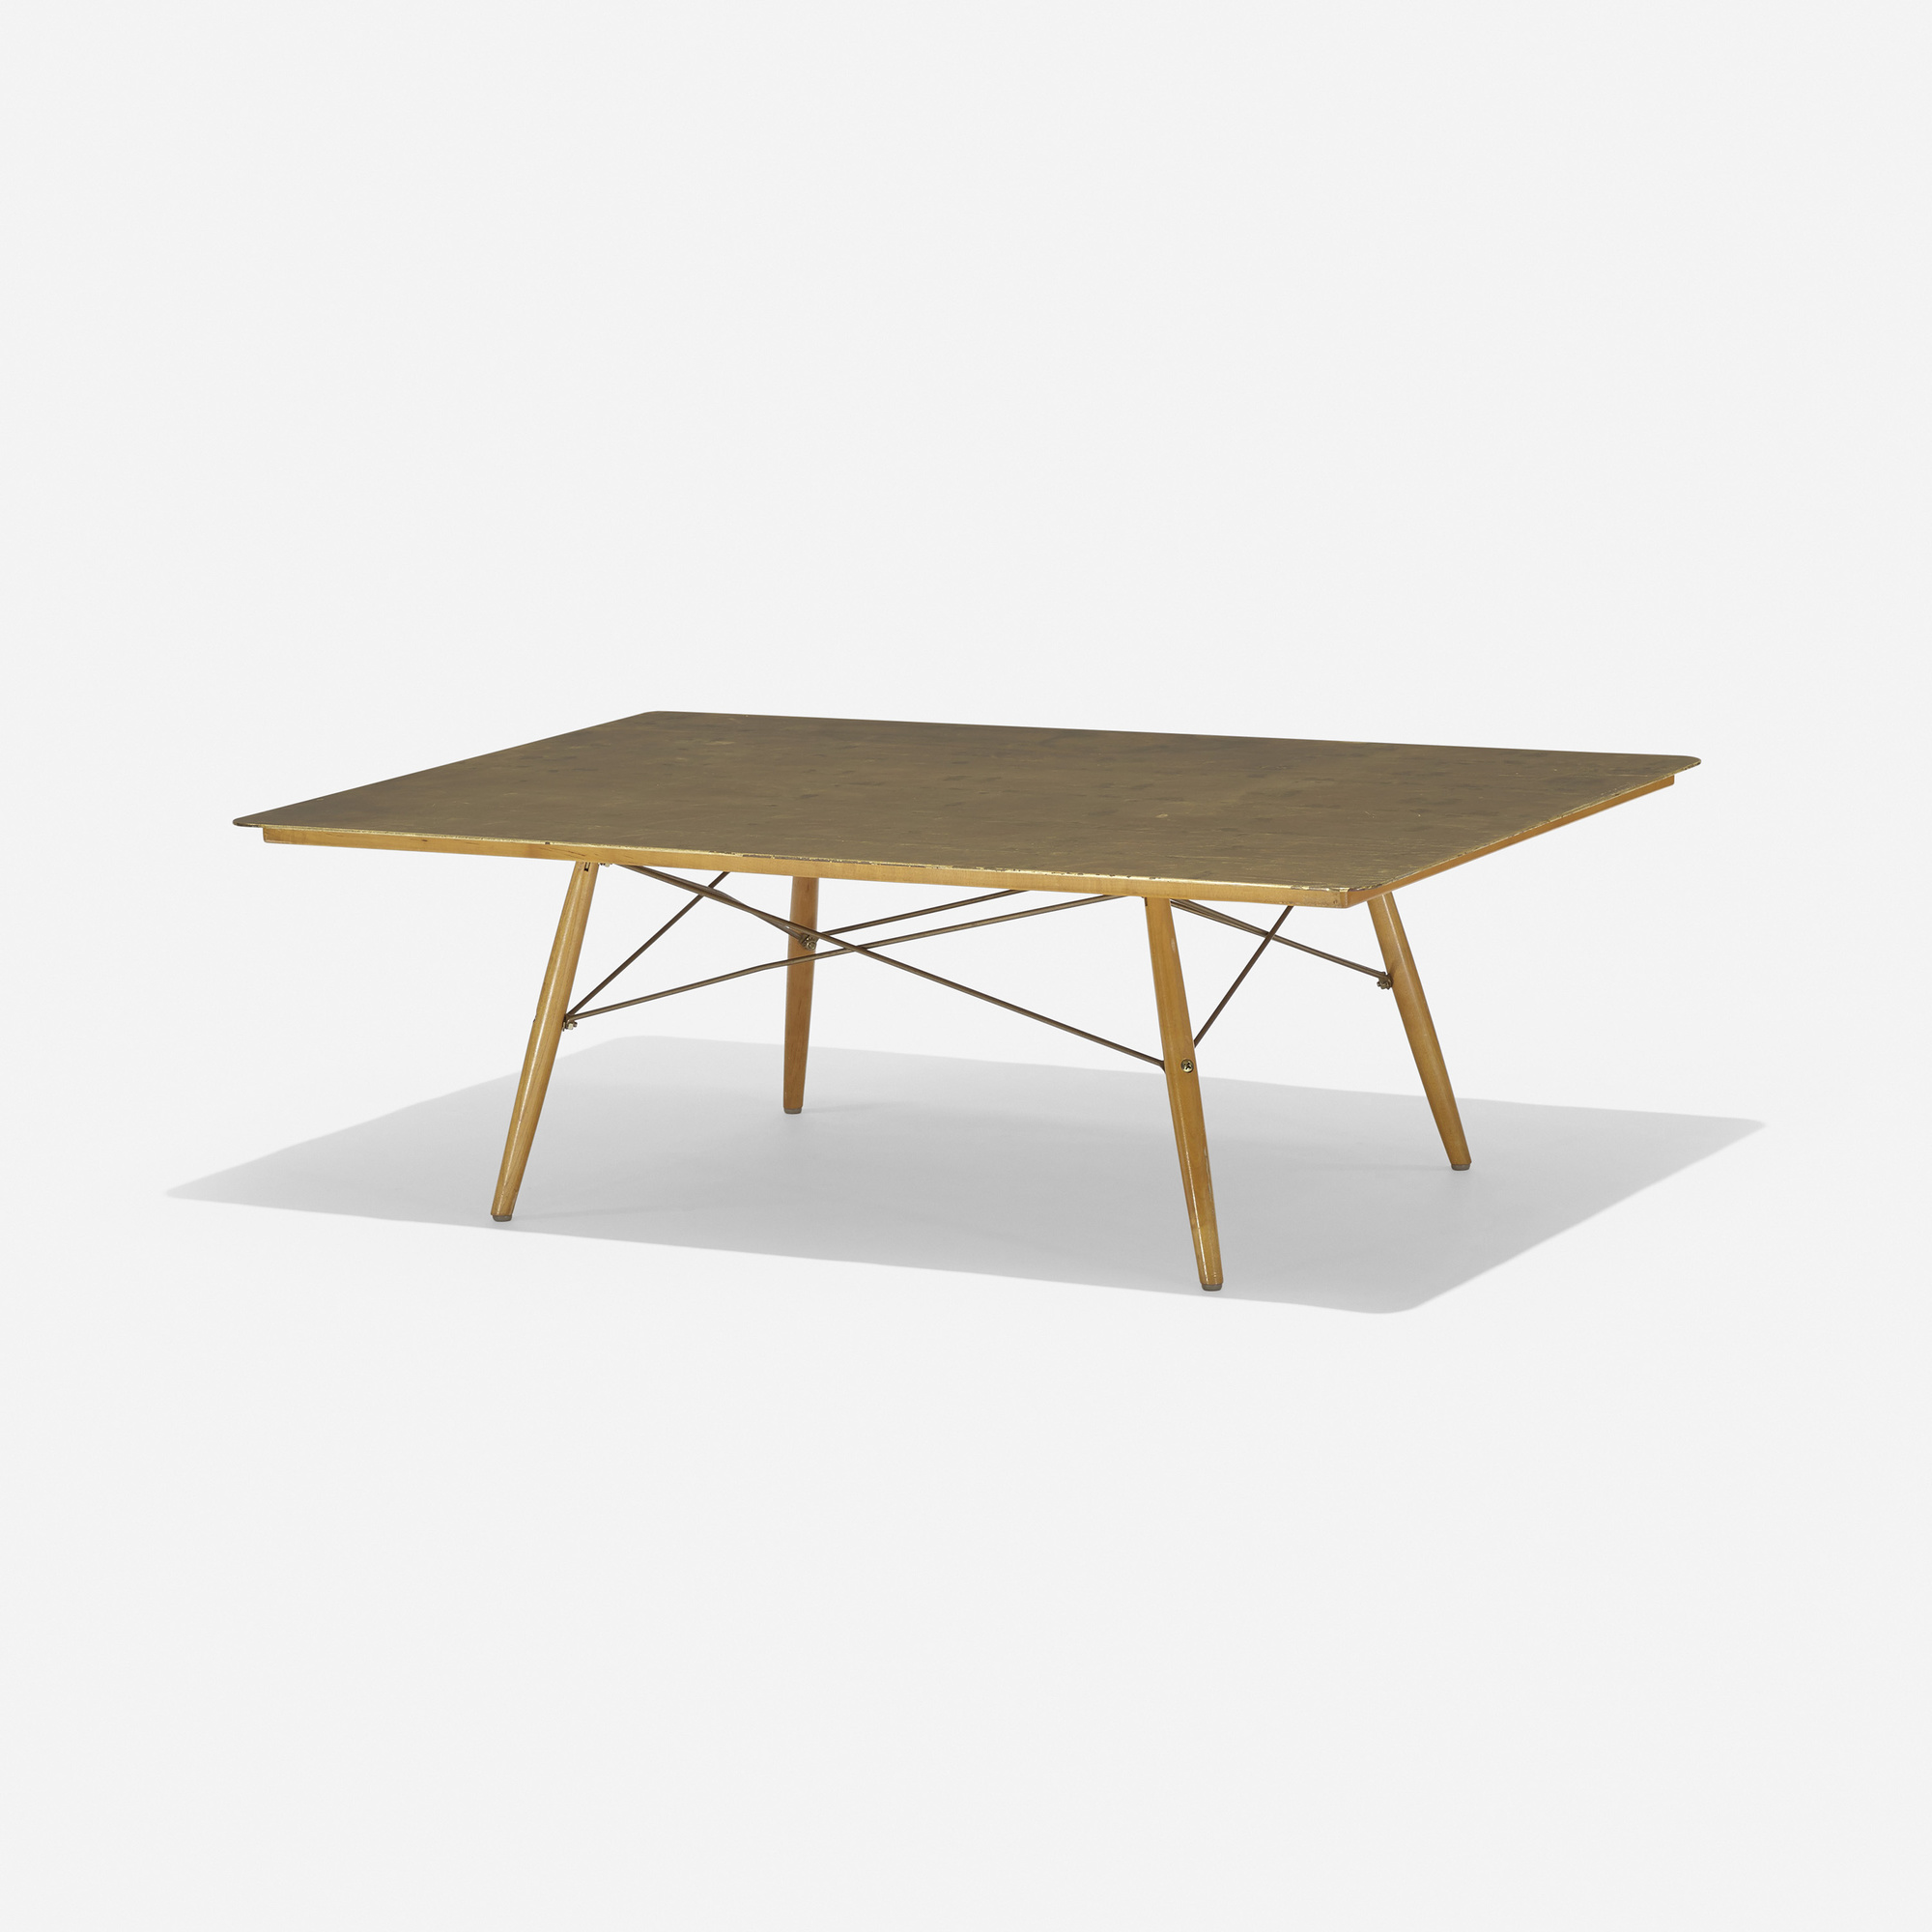 135 charles and ray eames 50th anniversary coffee table. Black Bedroom Furniture Sets. Home Design Ideas